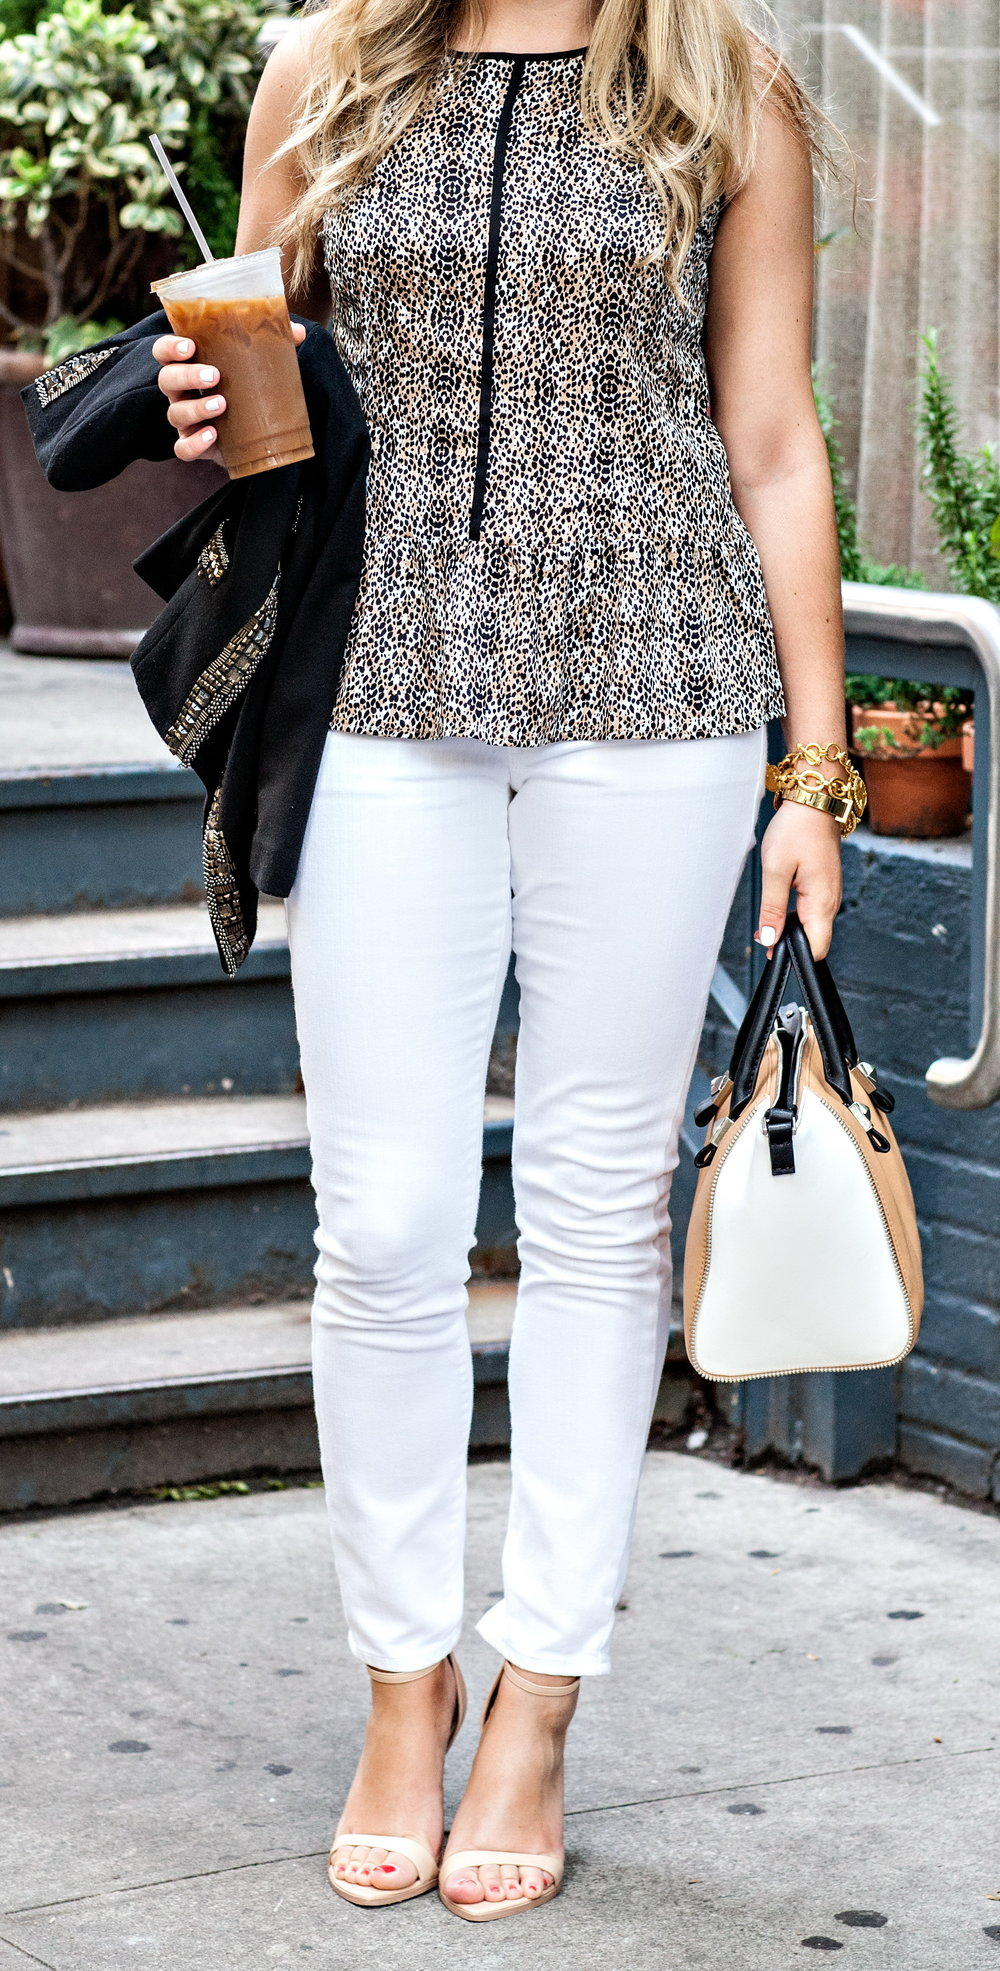 Wear White Jeans to the Work Place http://www.bowsandsequins.com